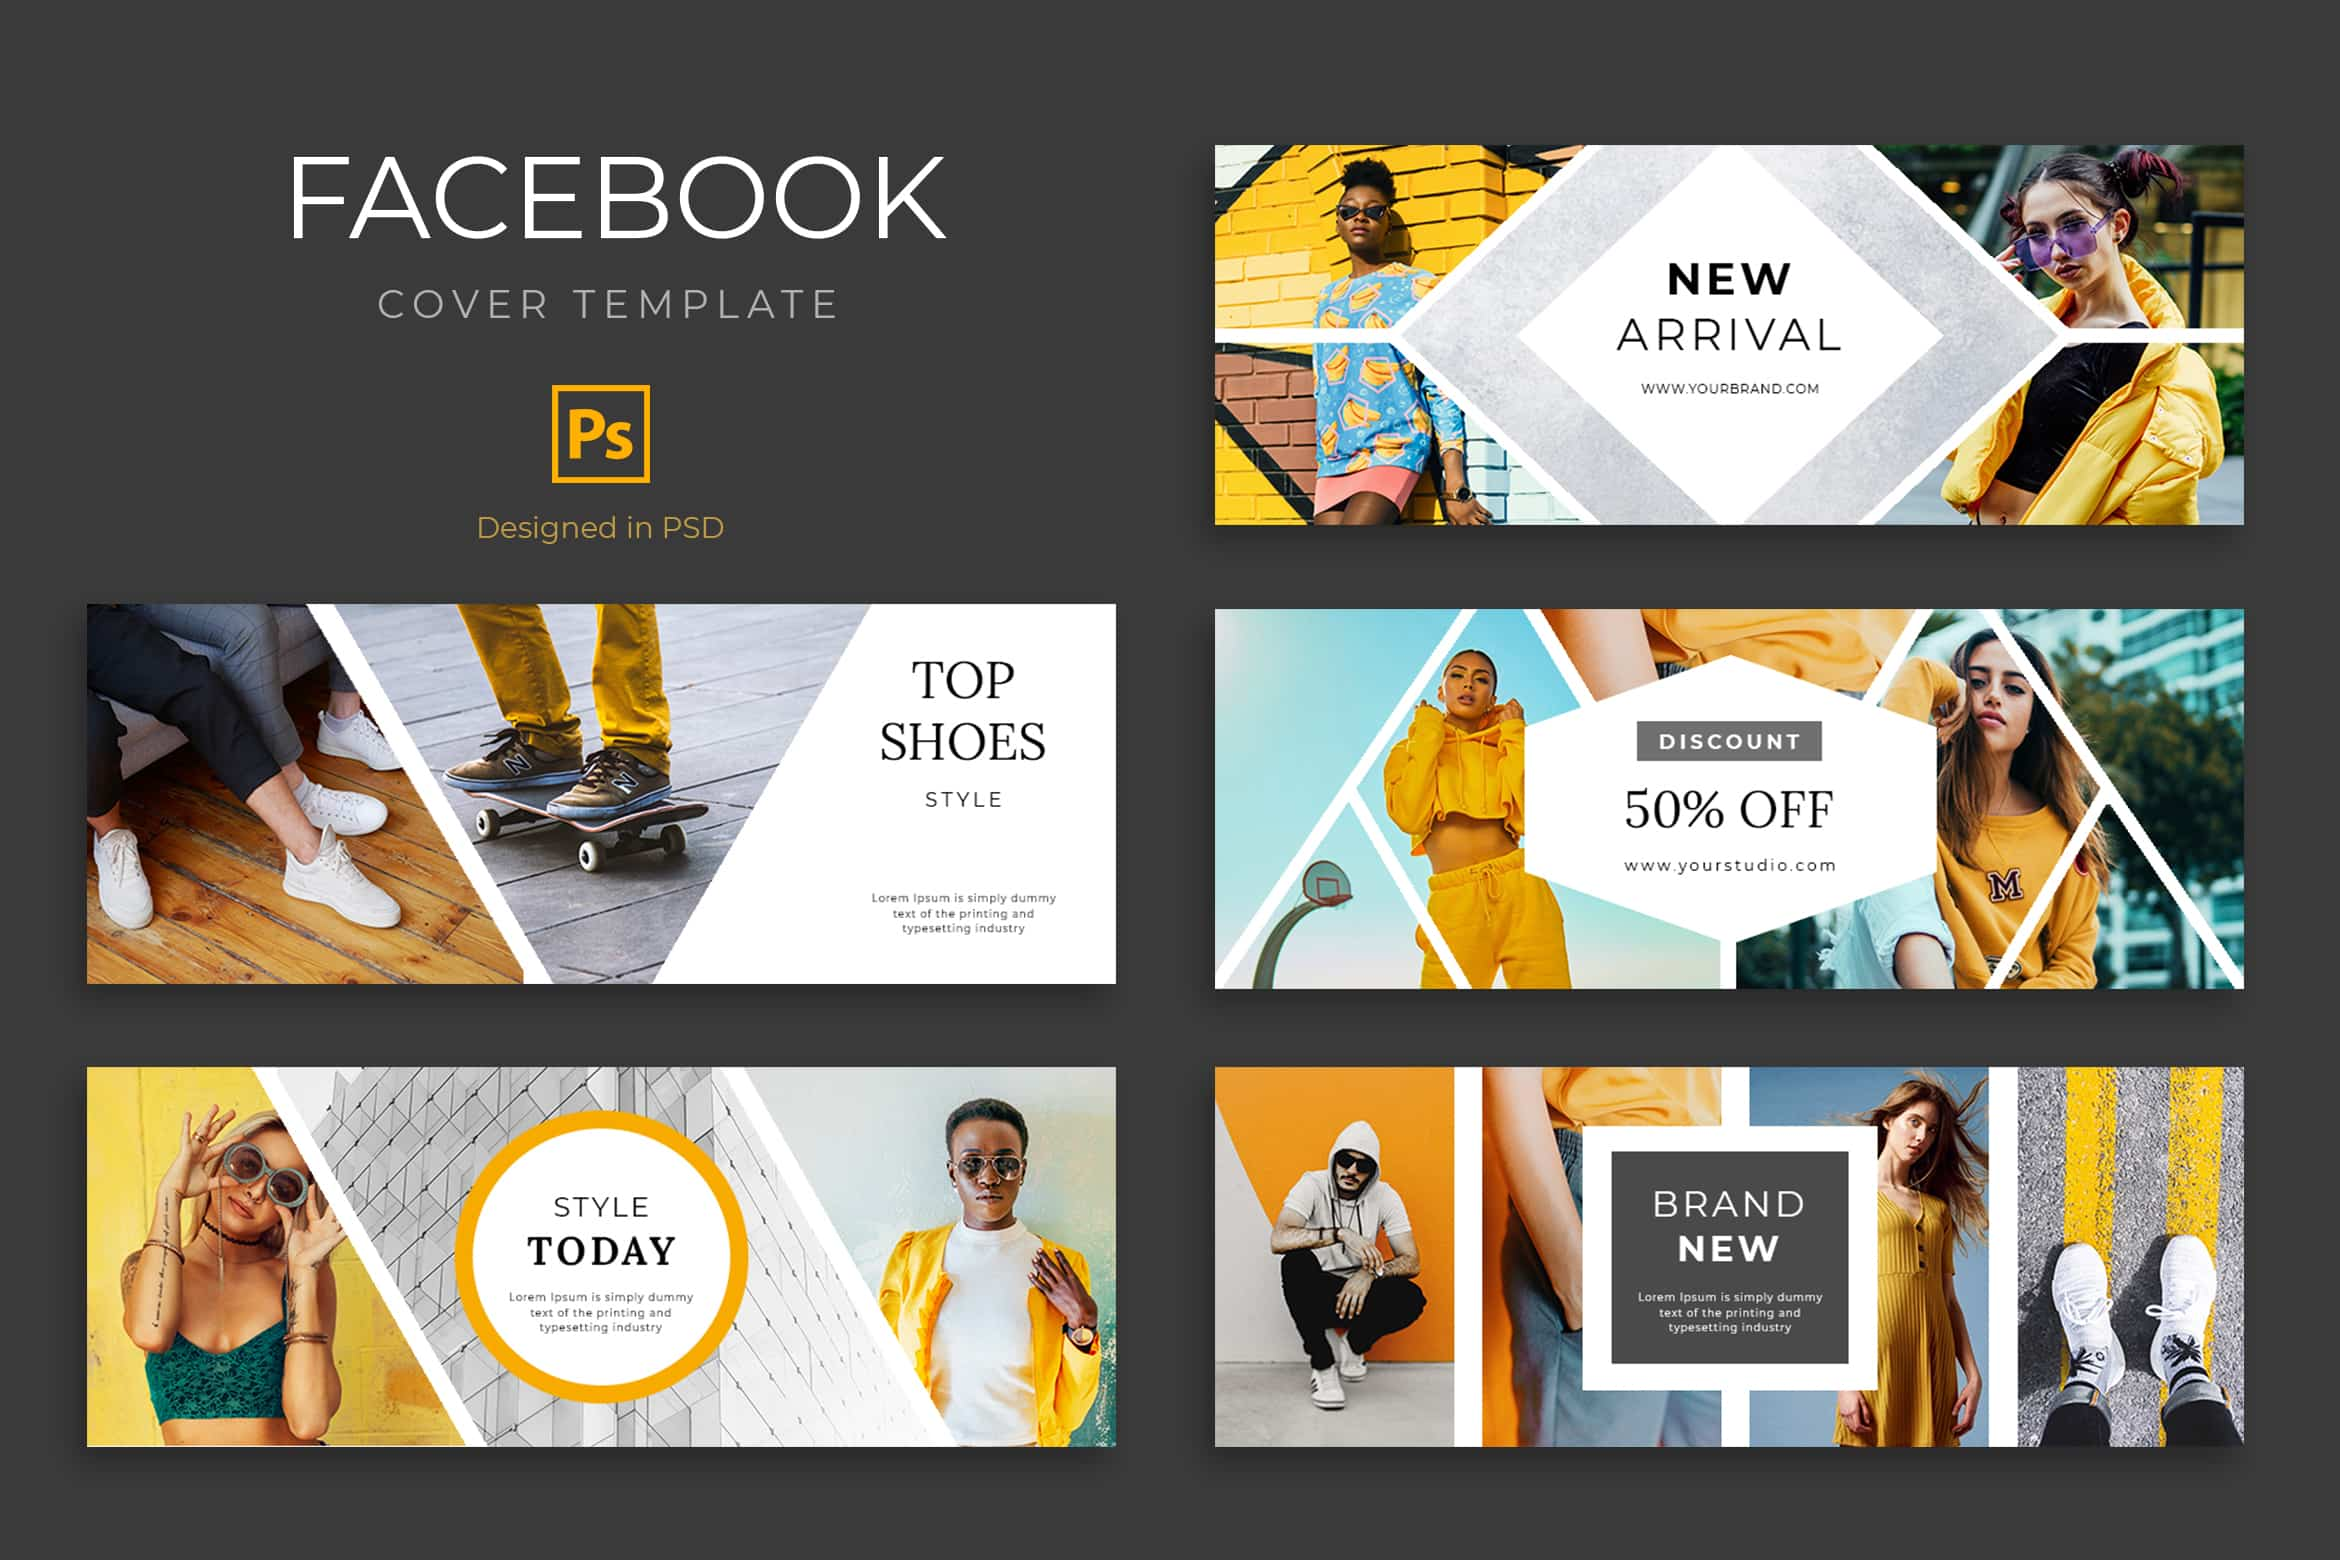 Facebook Cover - Fashion Brand Discount, is highly suitable for promoting your business, product, brand, community, event, or services. Thistemplate is fully editable and customizable in adobe photoshop.